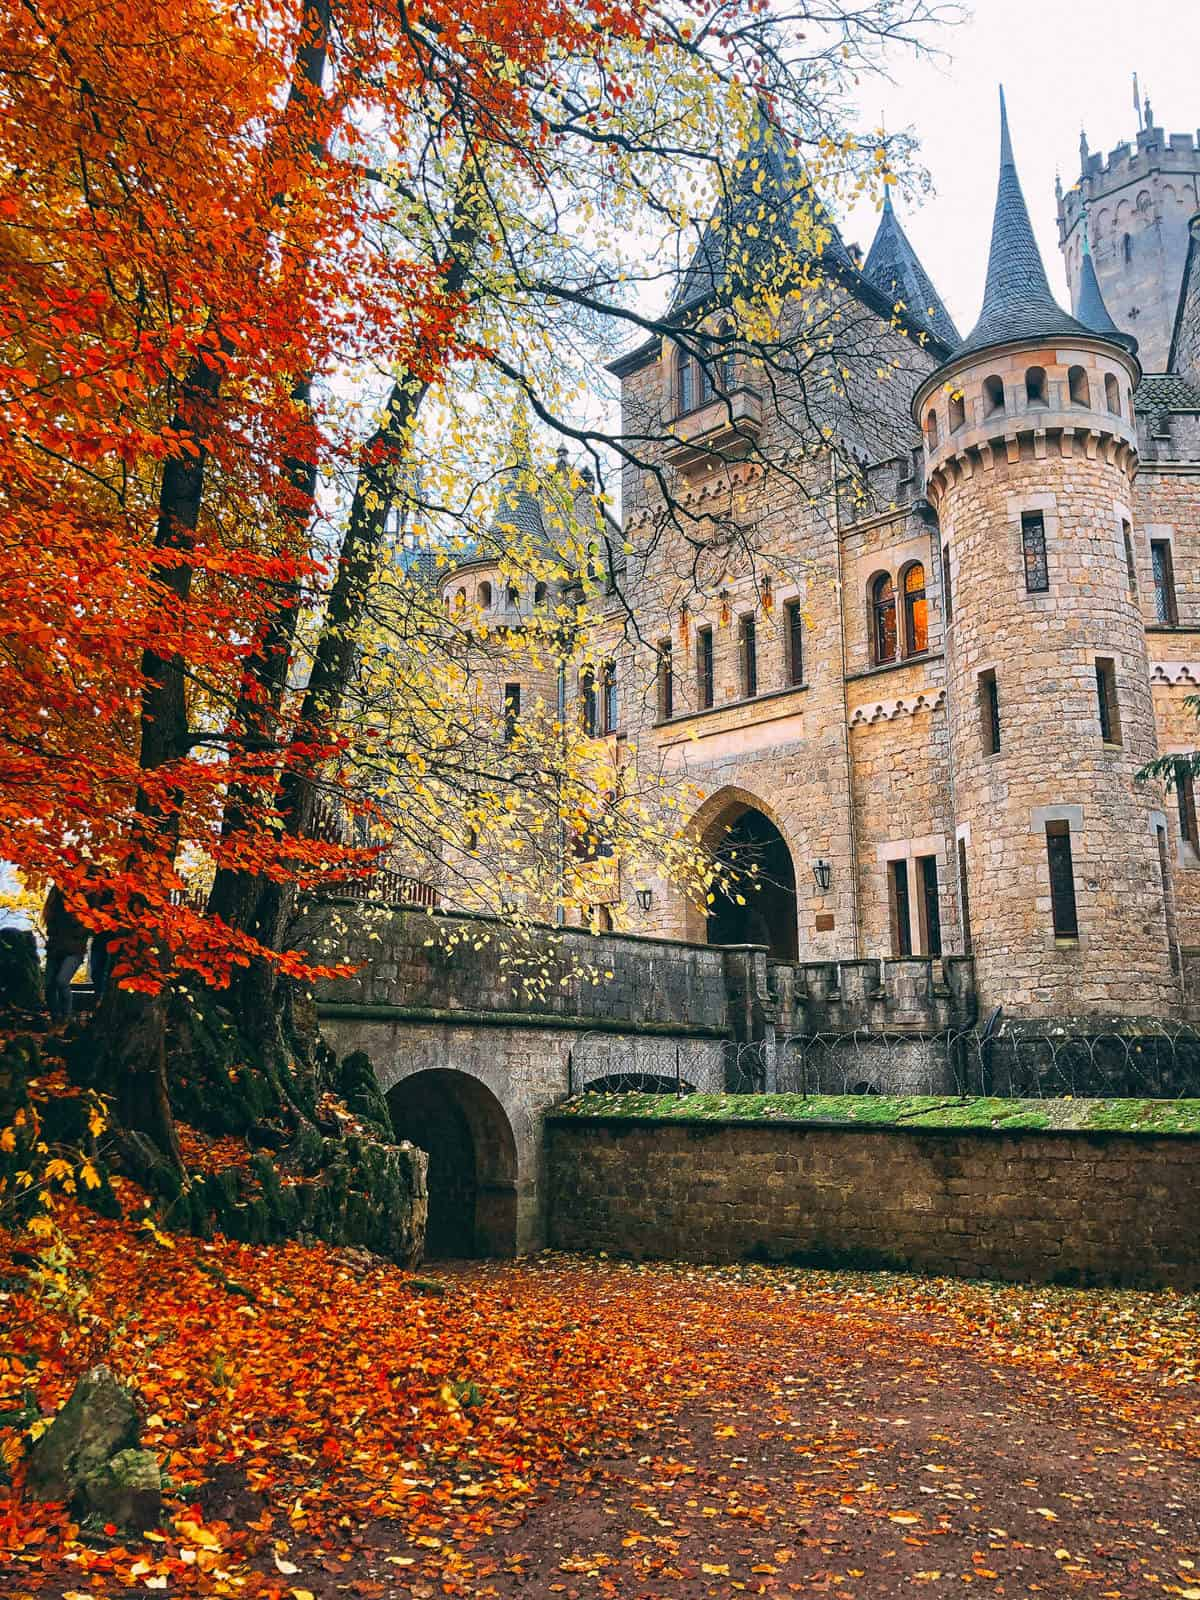 Autumn leaves leaning over a bridge crossing to the entrance of an old castle